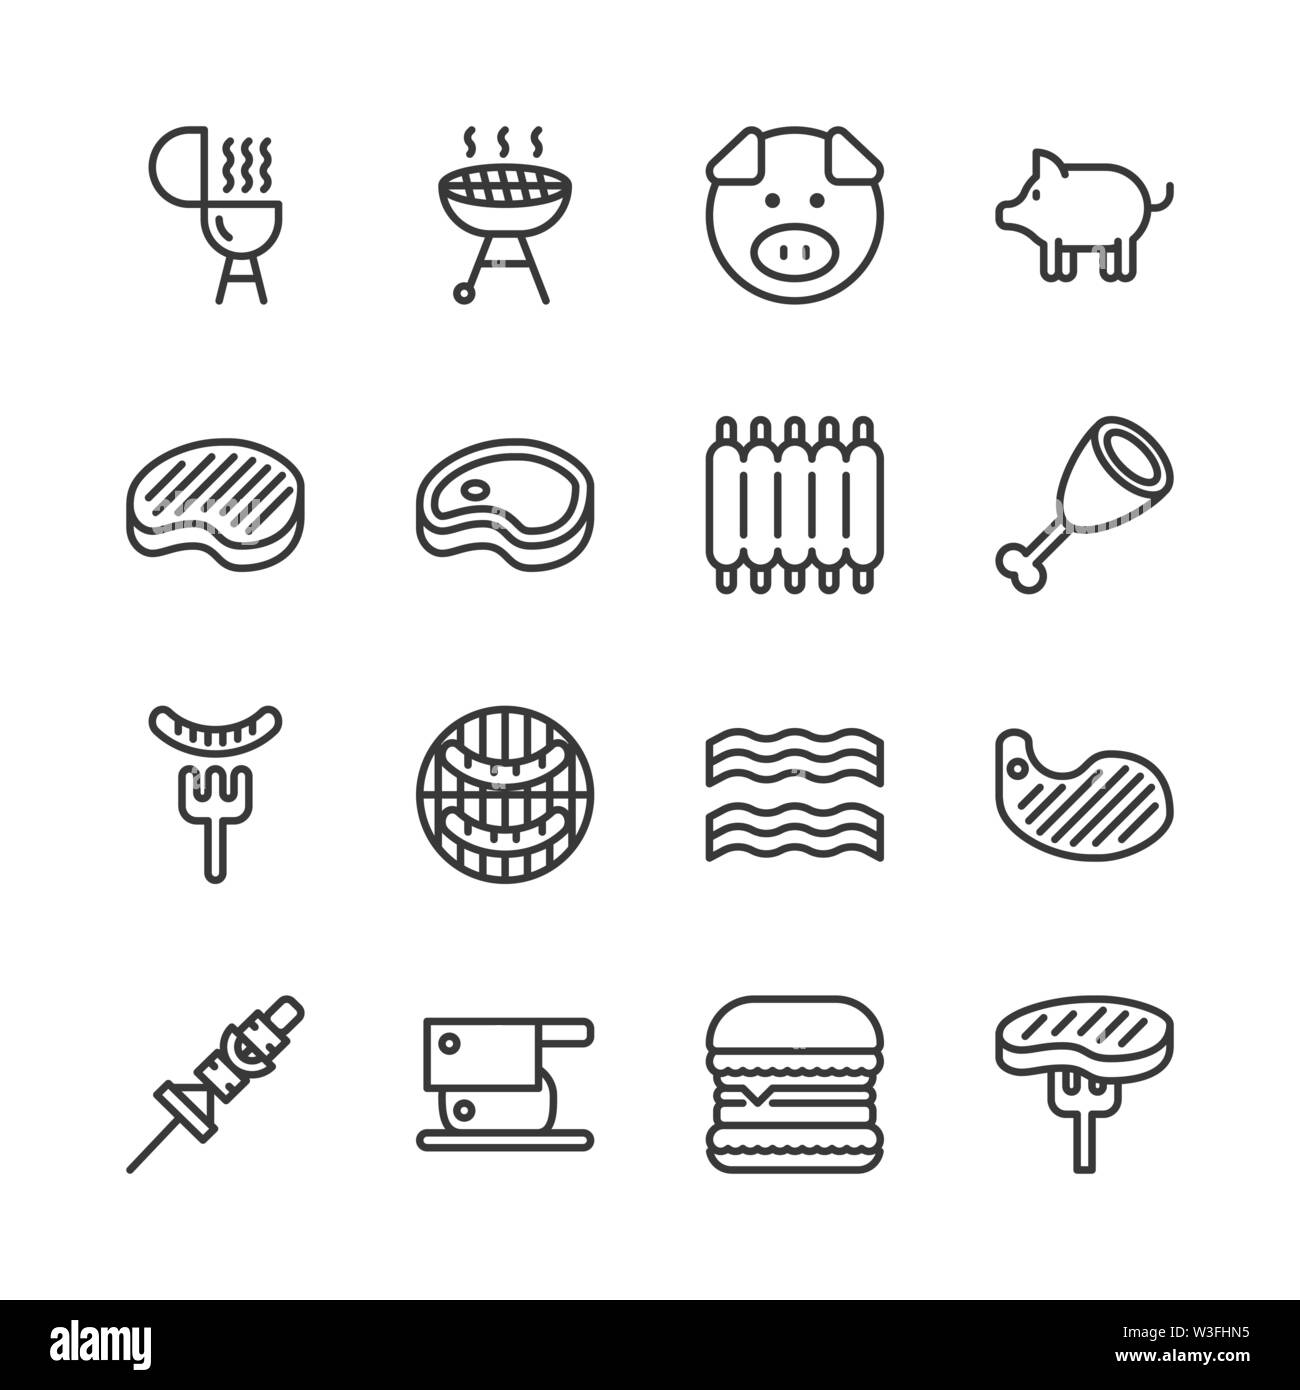 Pork related icon set.Vector illustration - Stock Image